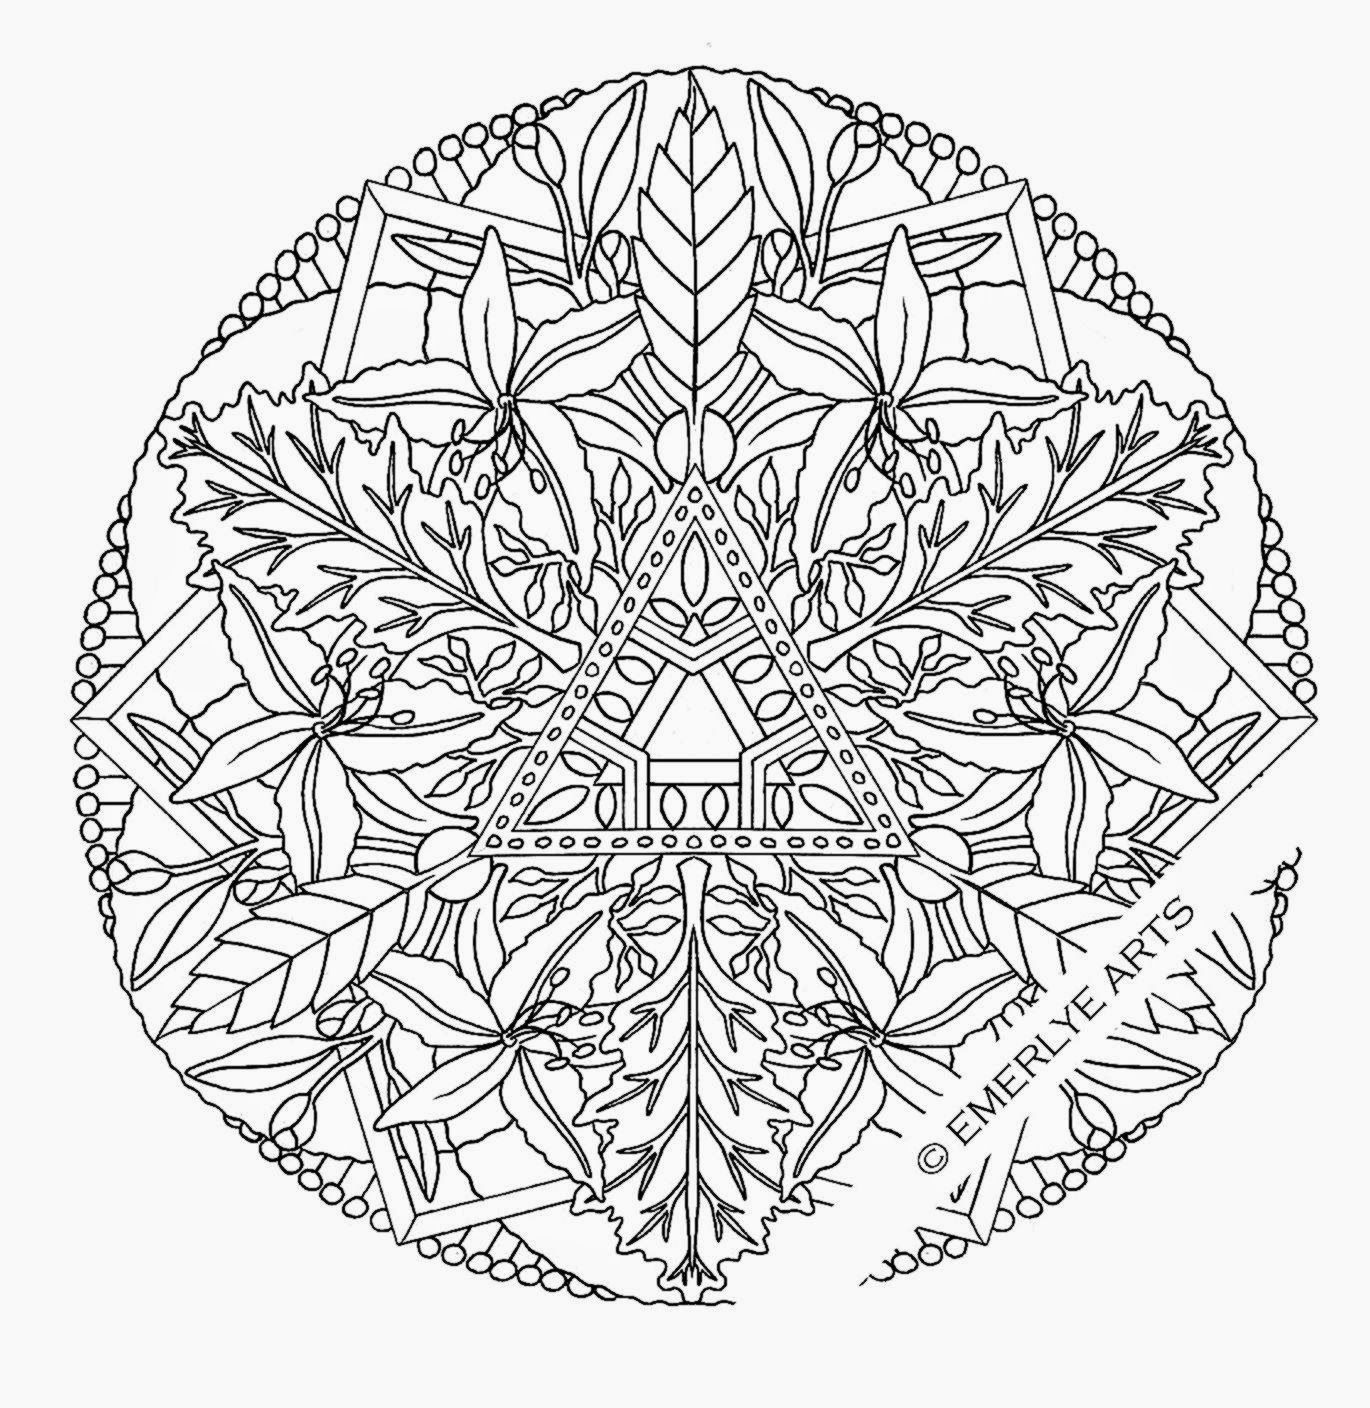 Soccer Coloring Pages Adults Coloring Pages Geometric